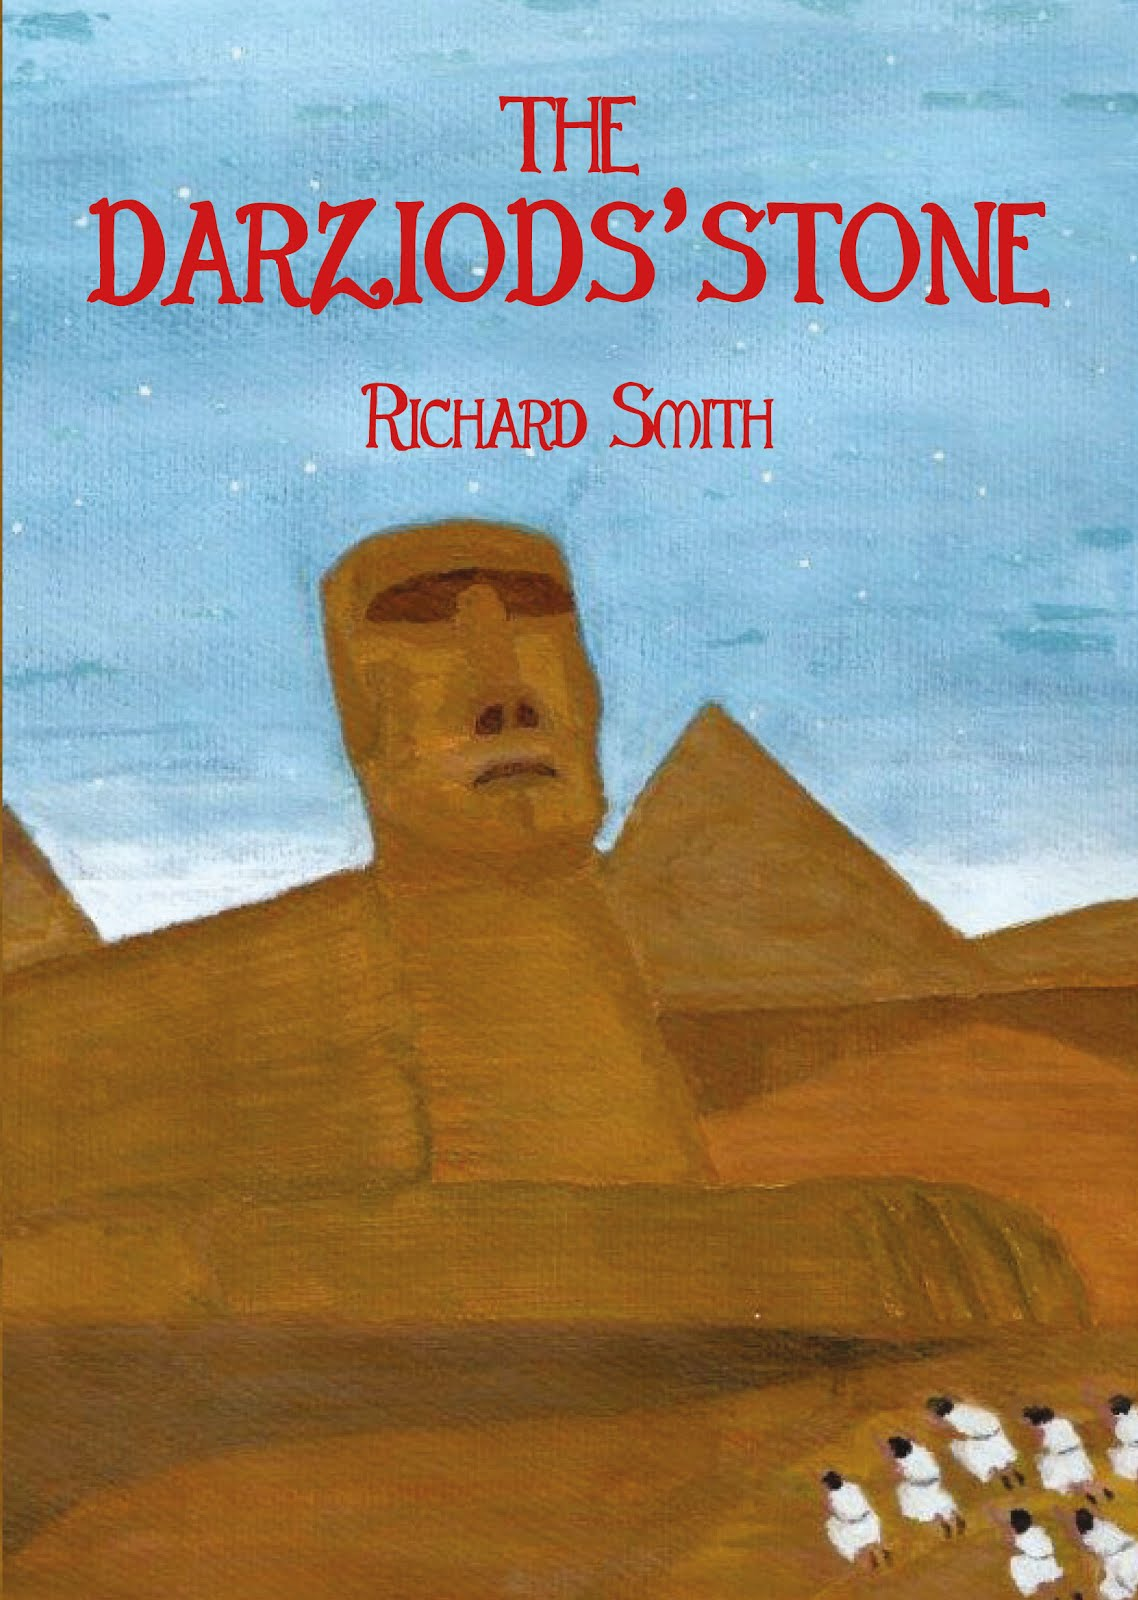 Buy The Darziods' Stone now